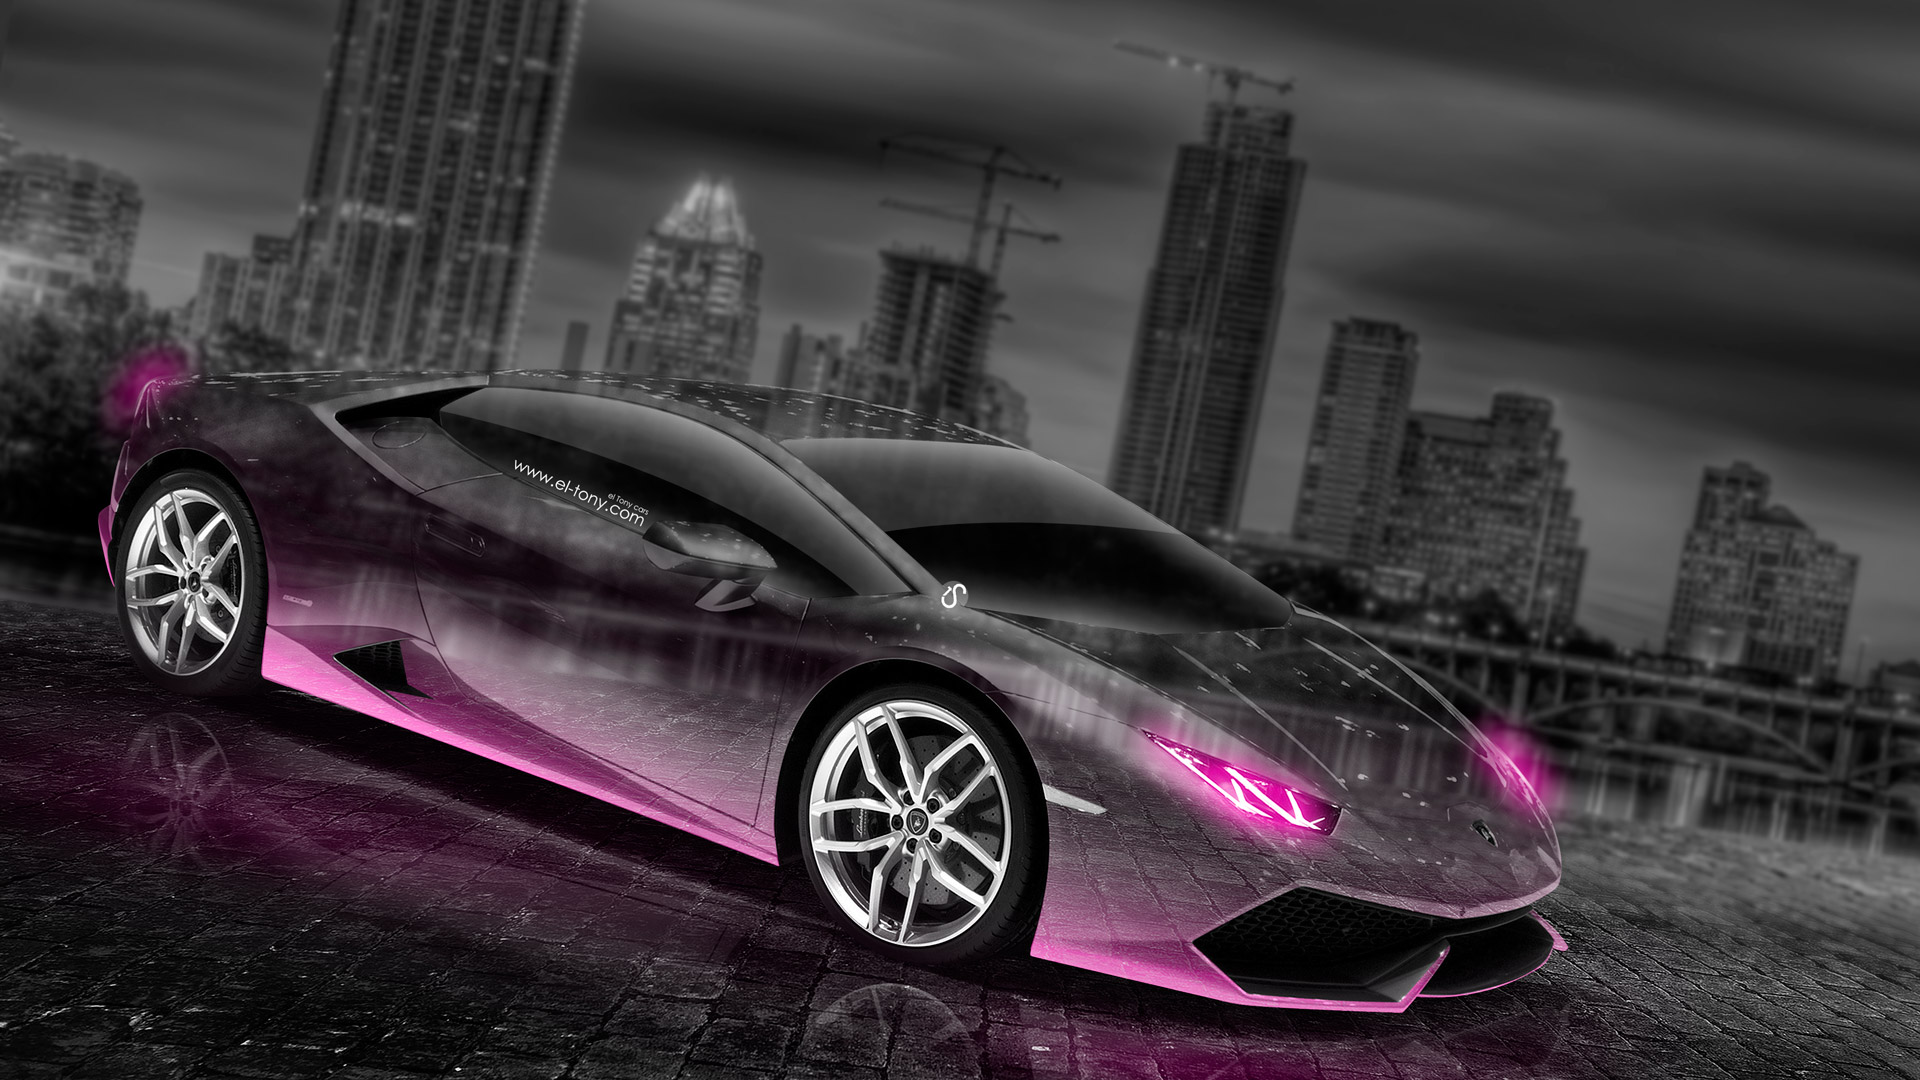 Lamborghini Huracan Crystal City Car 2014 | El Tony